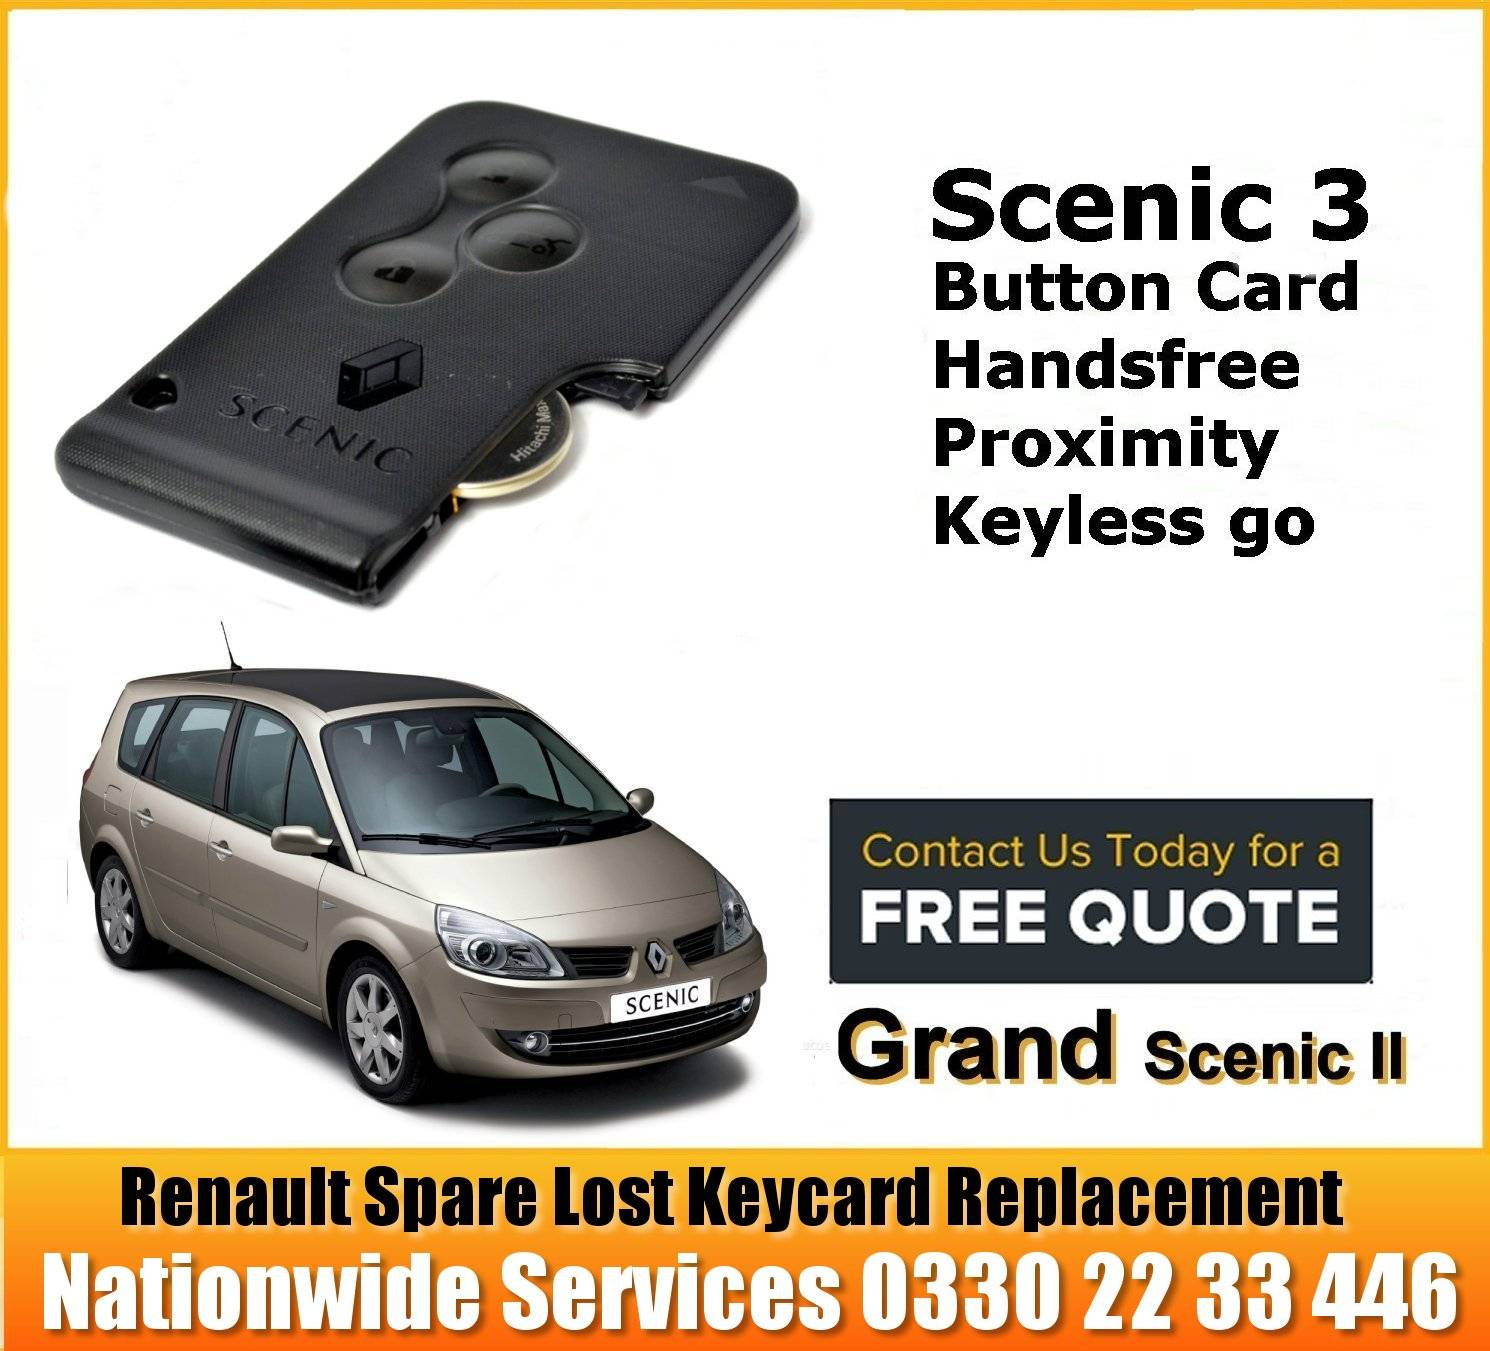 Renault Key Card key Card replacement repair Birchfield, Birmingham City Centre, Boldmere, Bordesley, Bordesley Green, Bournbrook, Bournville, Brandwood End, Brindleyplace, Bromford, Browns Green, Buckland End,